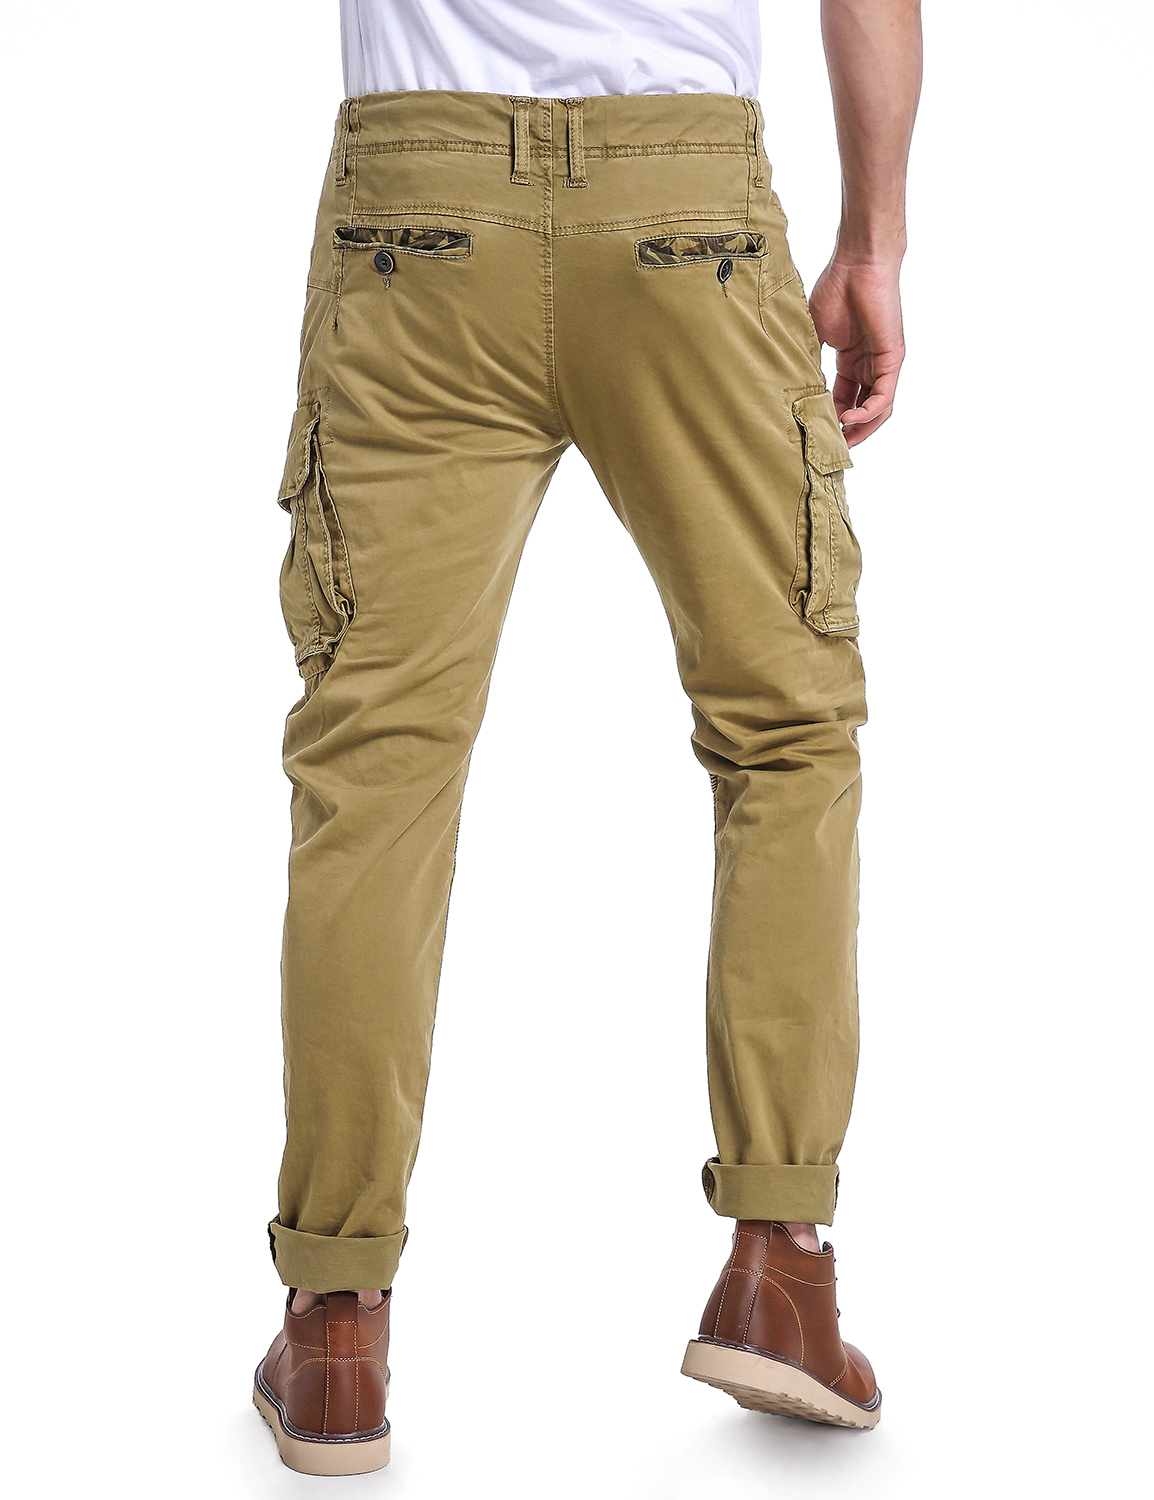 606054fcd1 Eaglide Mens Slim Fit Chino Jogger Pants, Mens Athletic Boys Casual ...